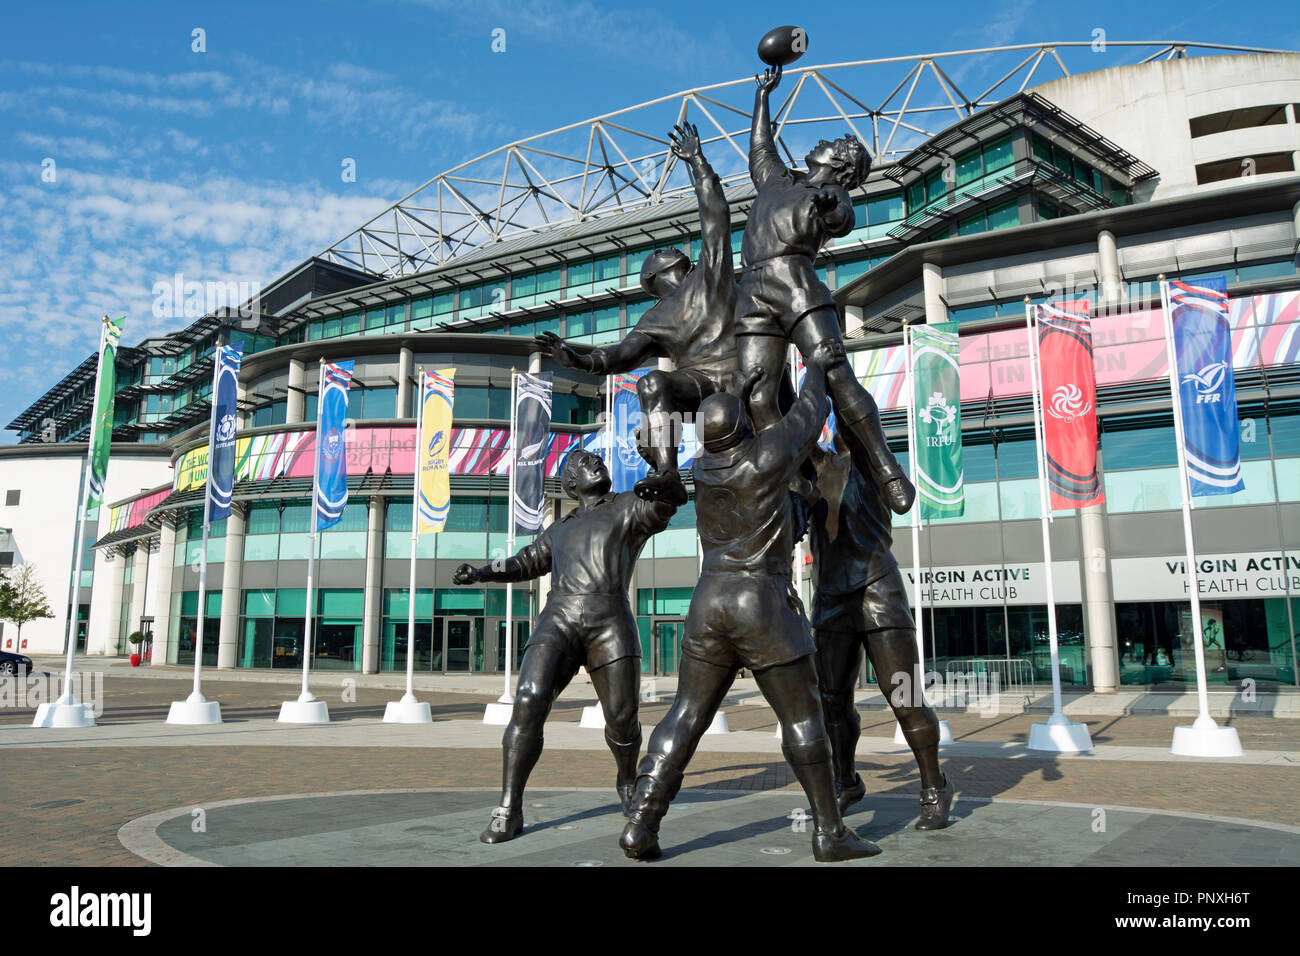 gerald laing's bronze sculpture, depicting a rugby lineout, outside twickenham rugby stadium, twickenham, middlesex, england - Stock Image